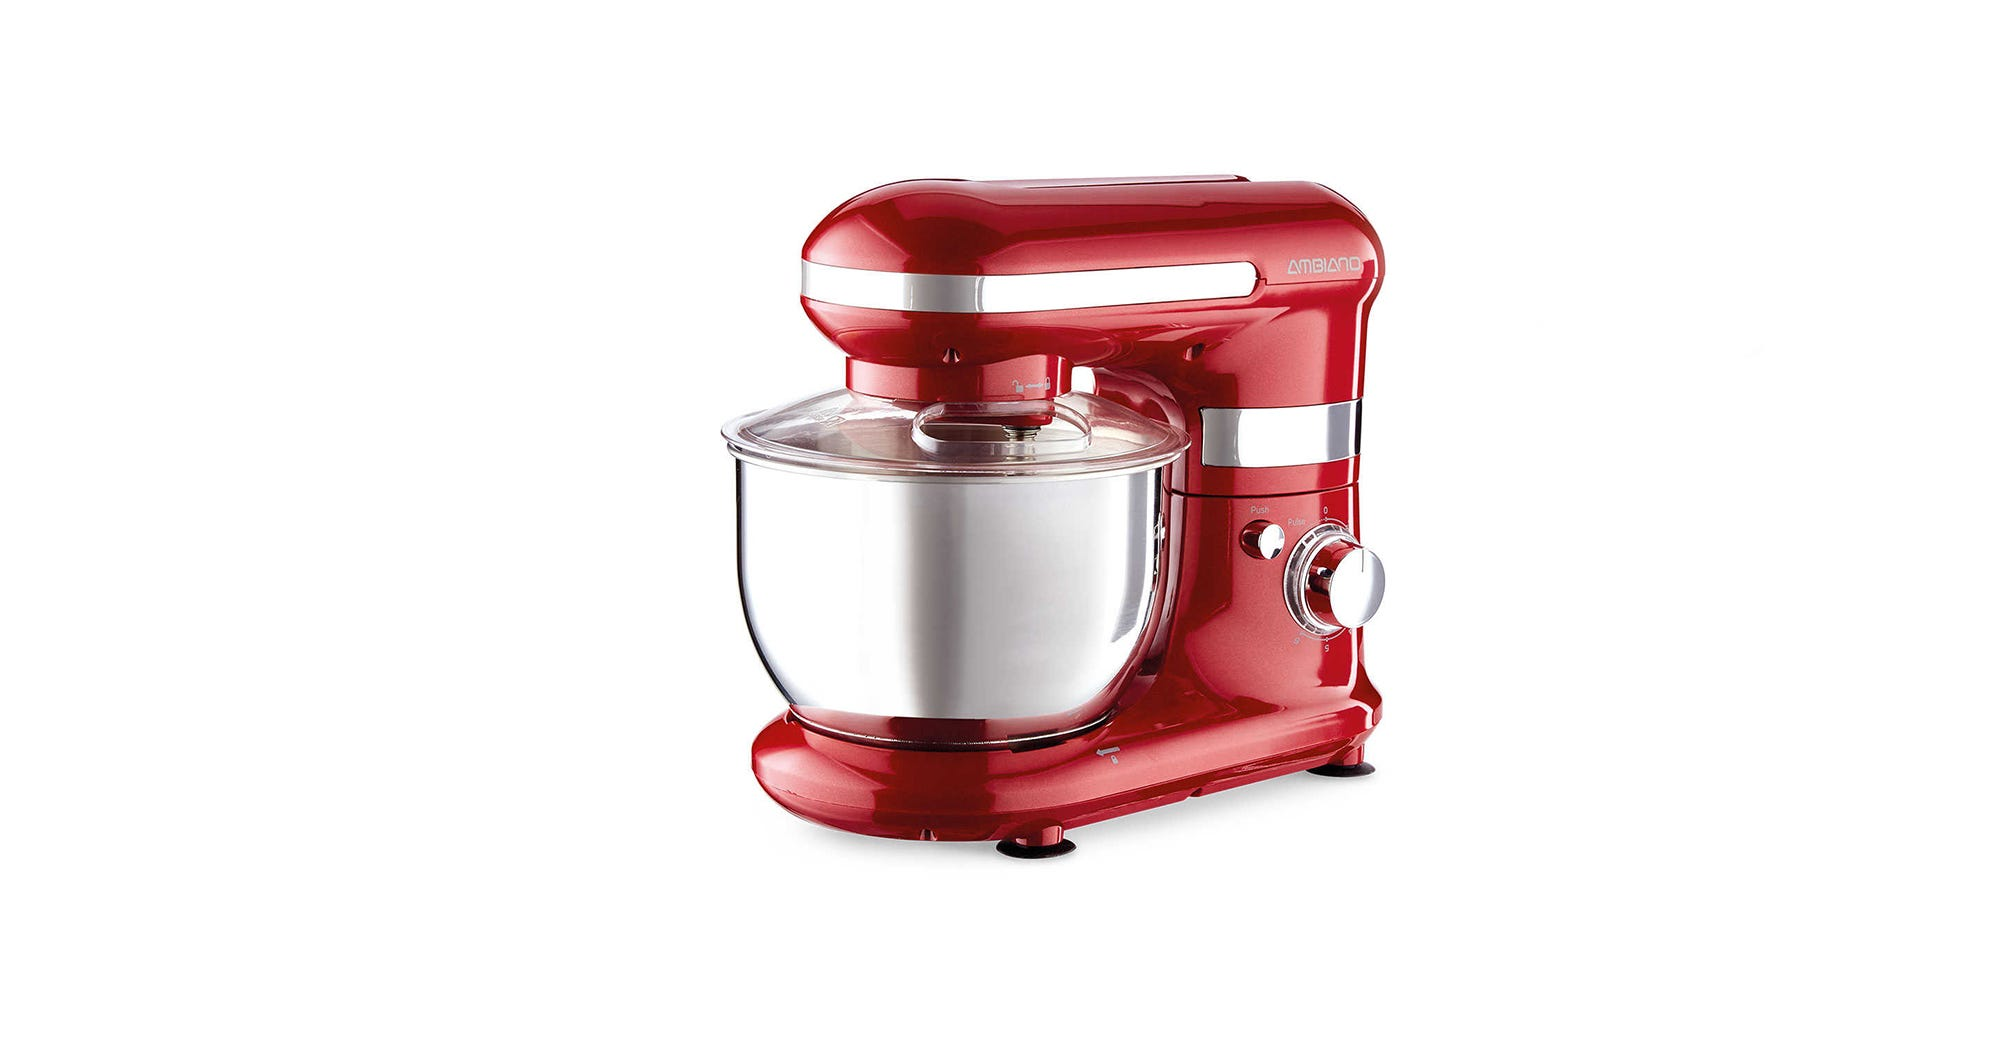 Just Like Home Toy Stand Mixer : Aldi ambiano stand mixer